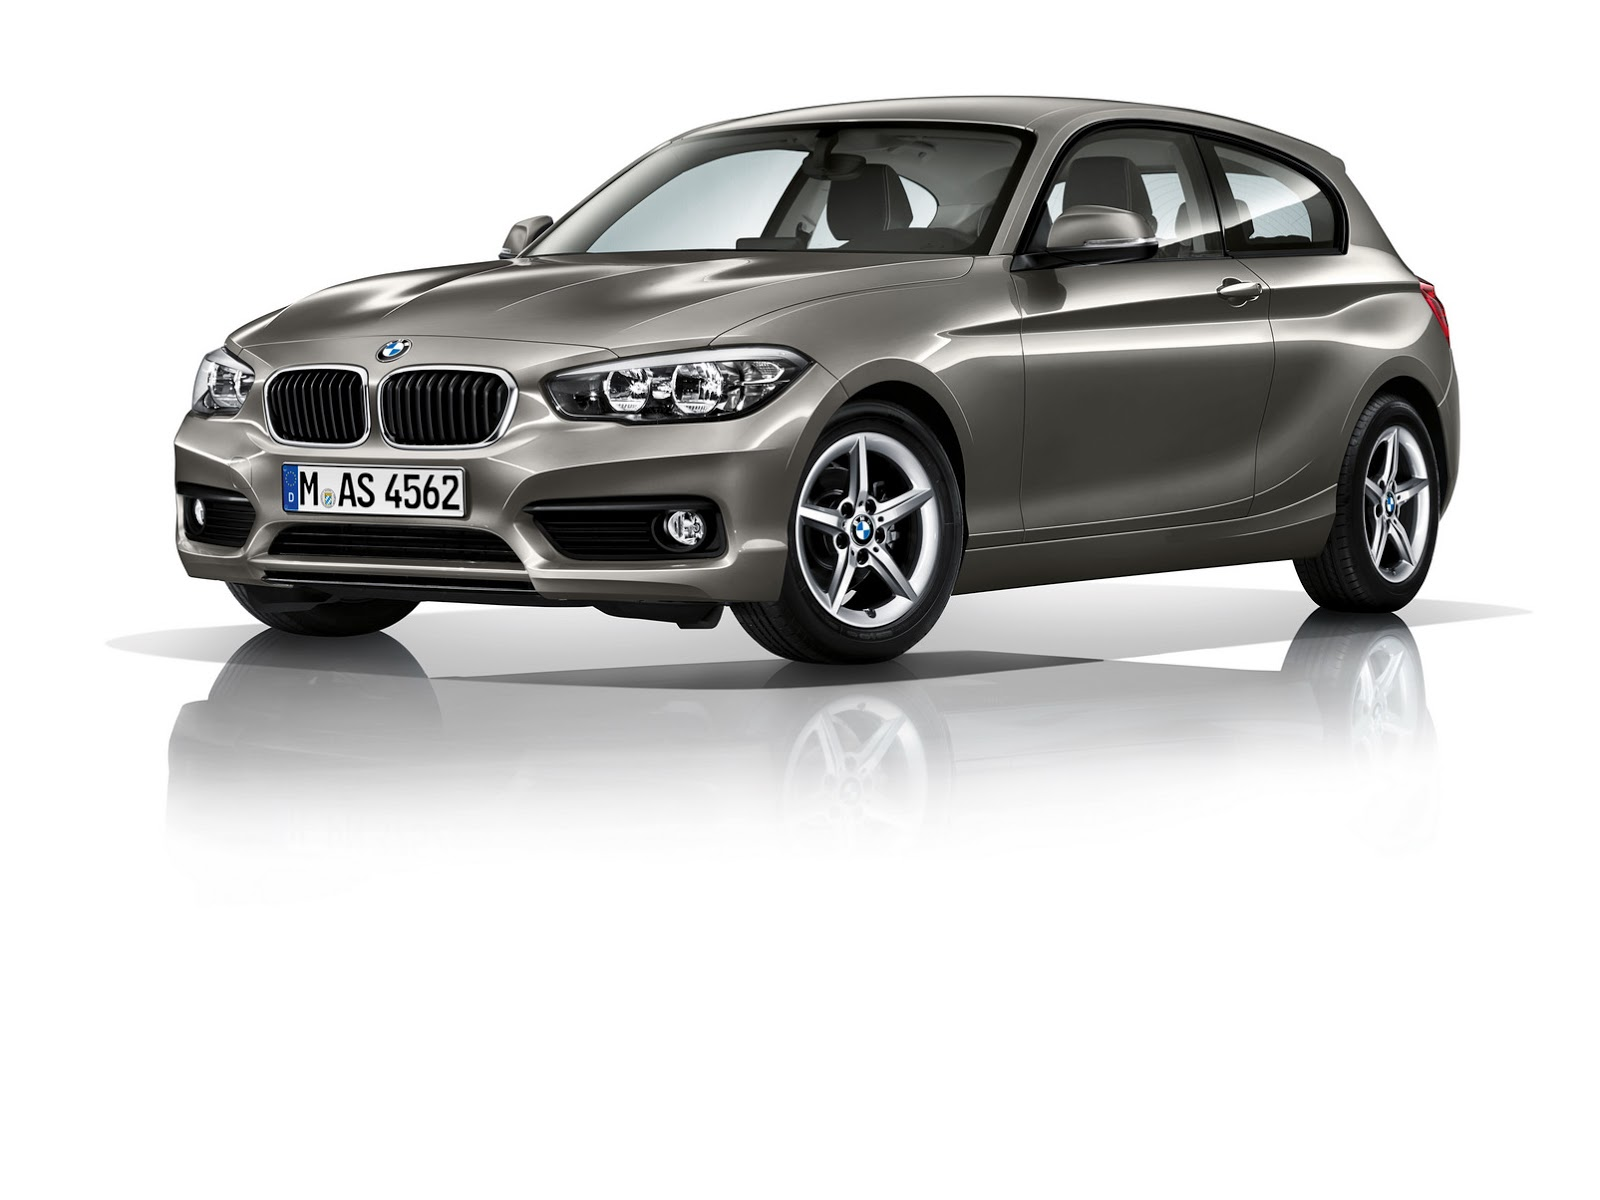 2016 bmw 1 series facelift this is it in 100 photos w video carscoops. Black Bedroom Furniture Sets. Home Design Ideas